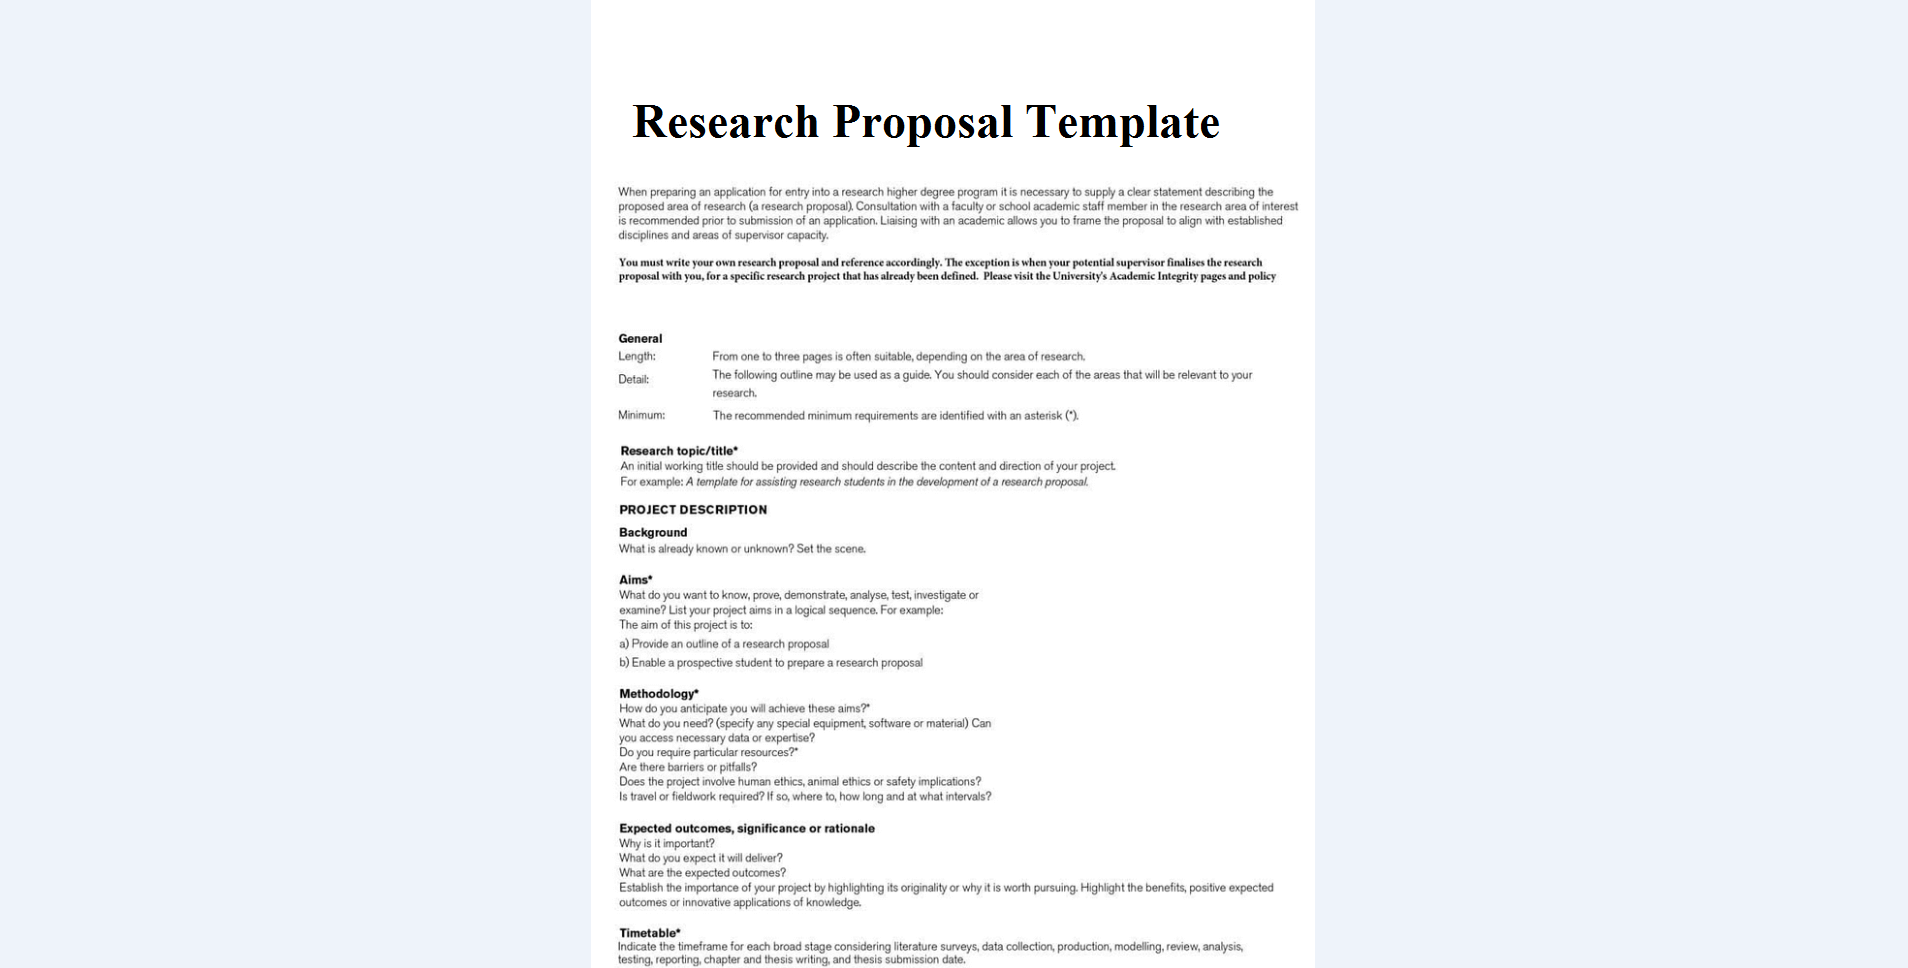 8 Research Plan Templates - Free Sample, Example Format ...